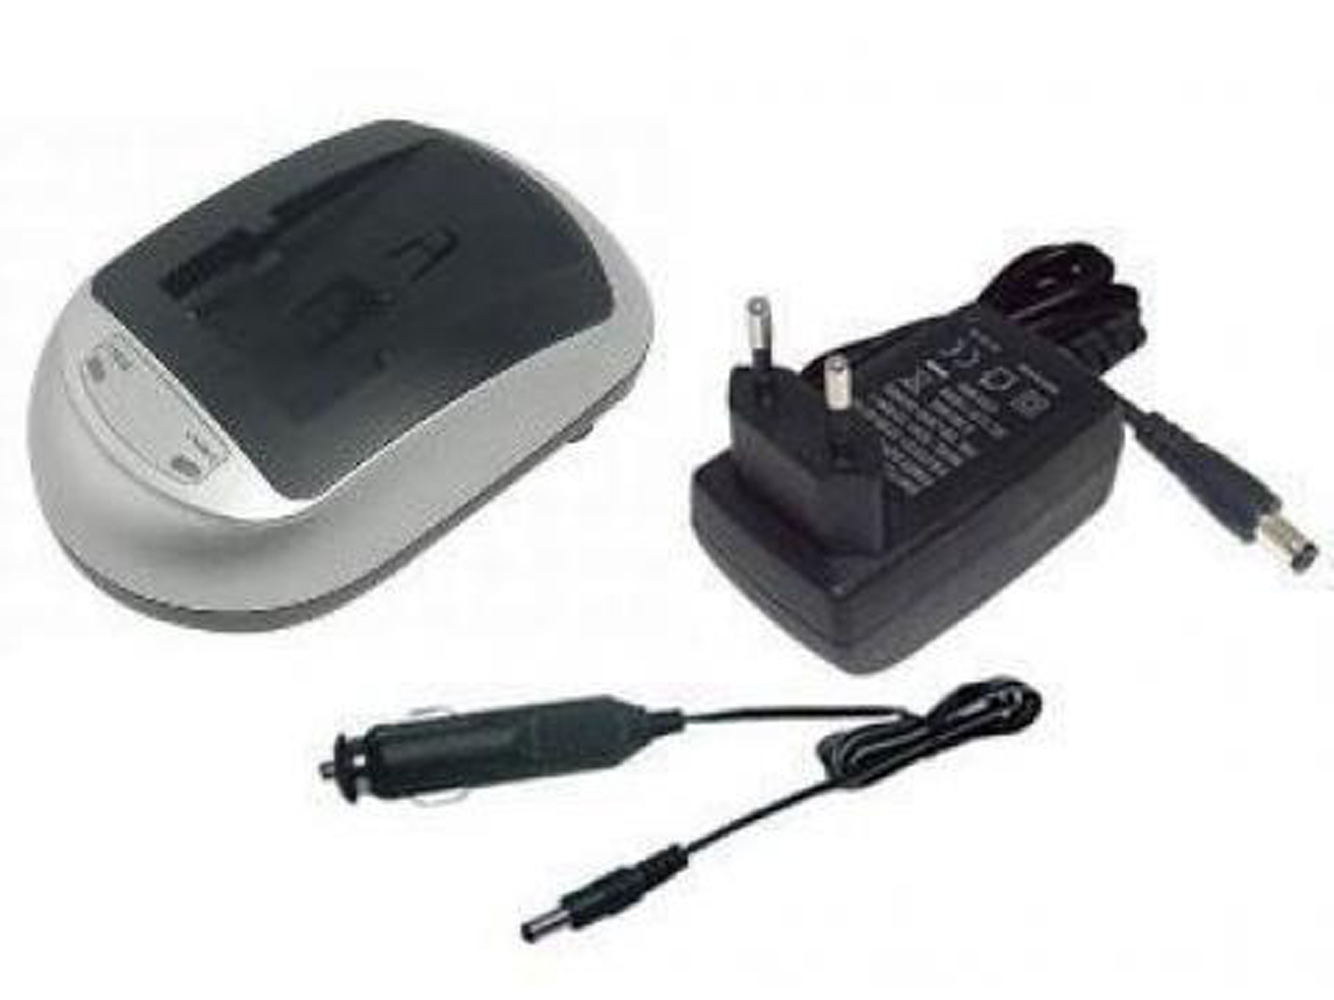 Battery Charger for SANYO DB-L20, DB-L20AU